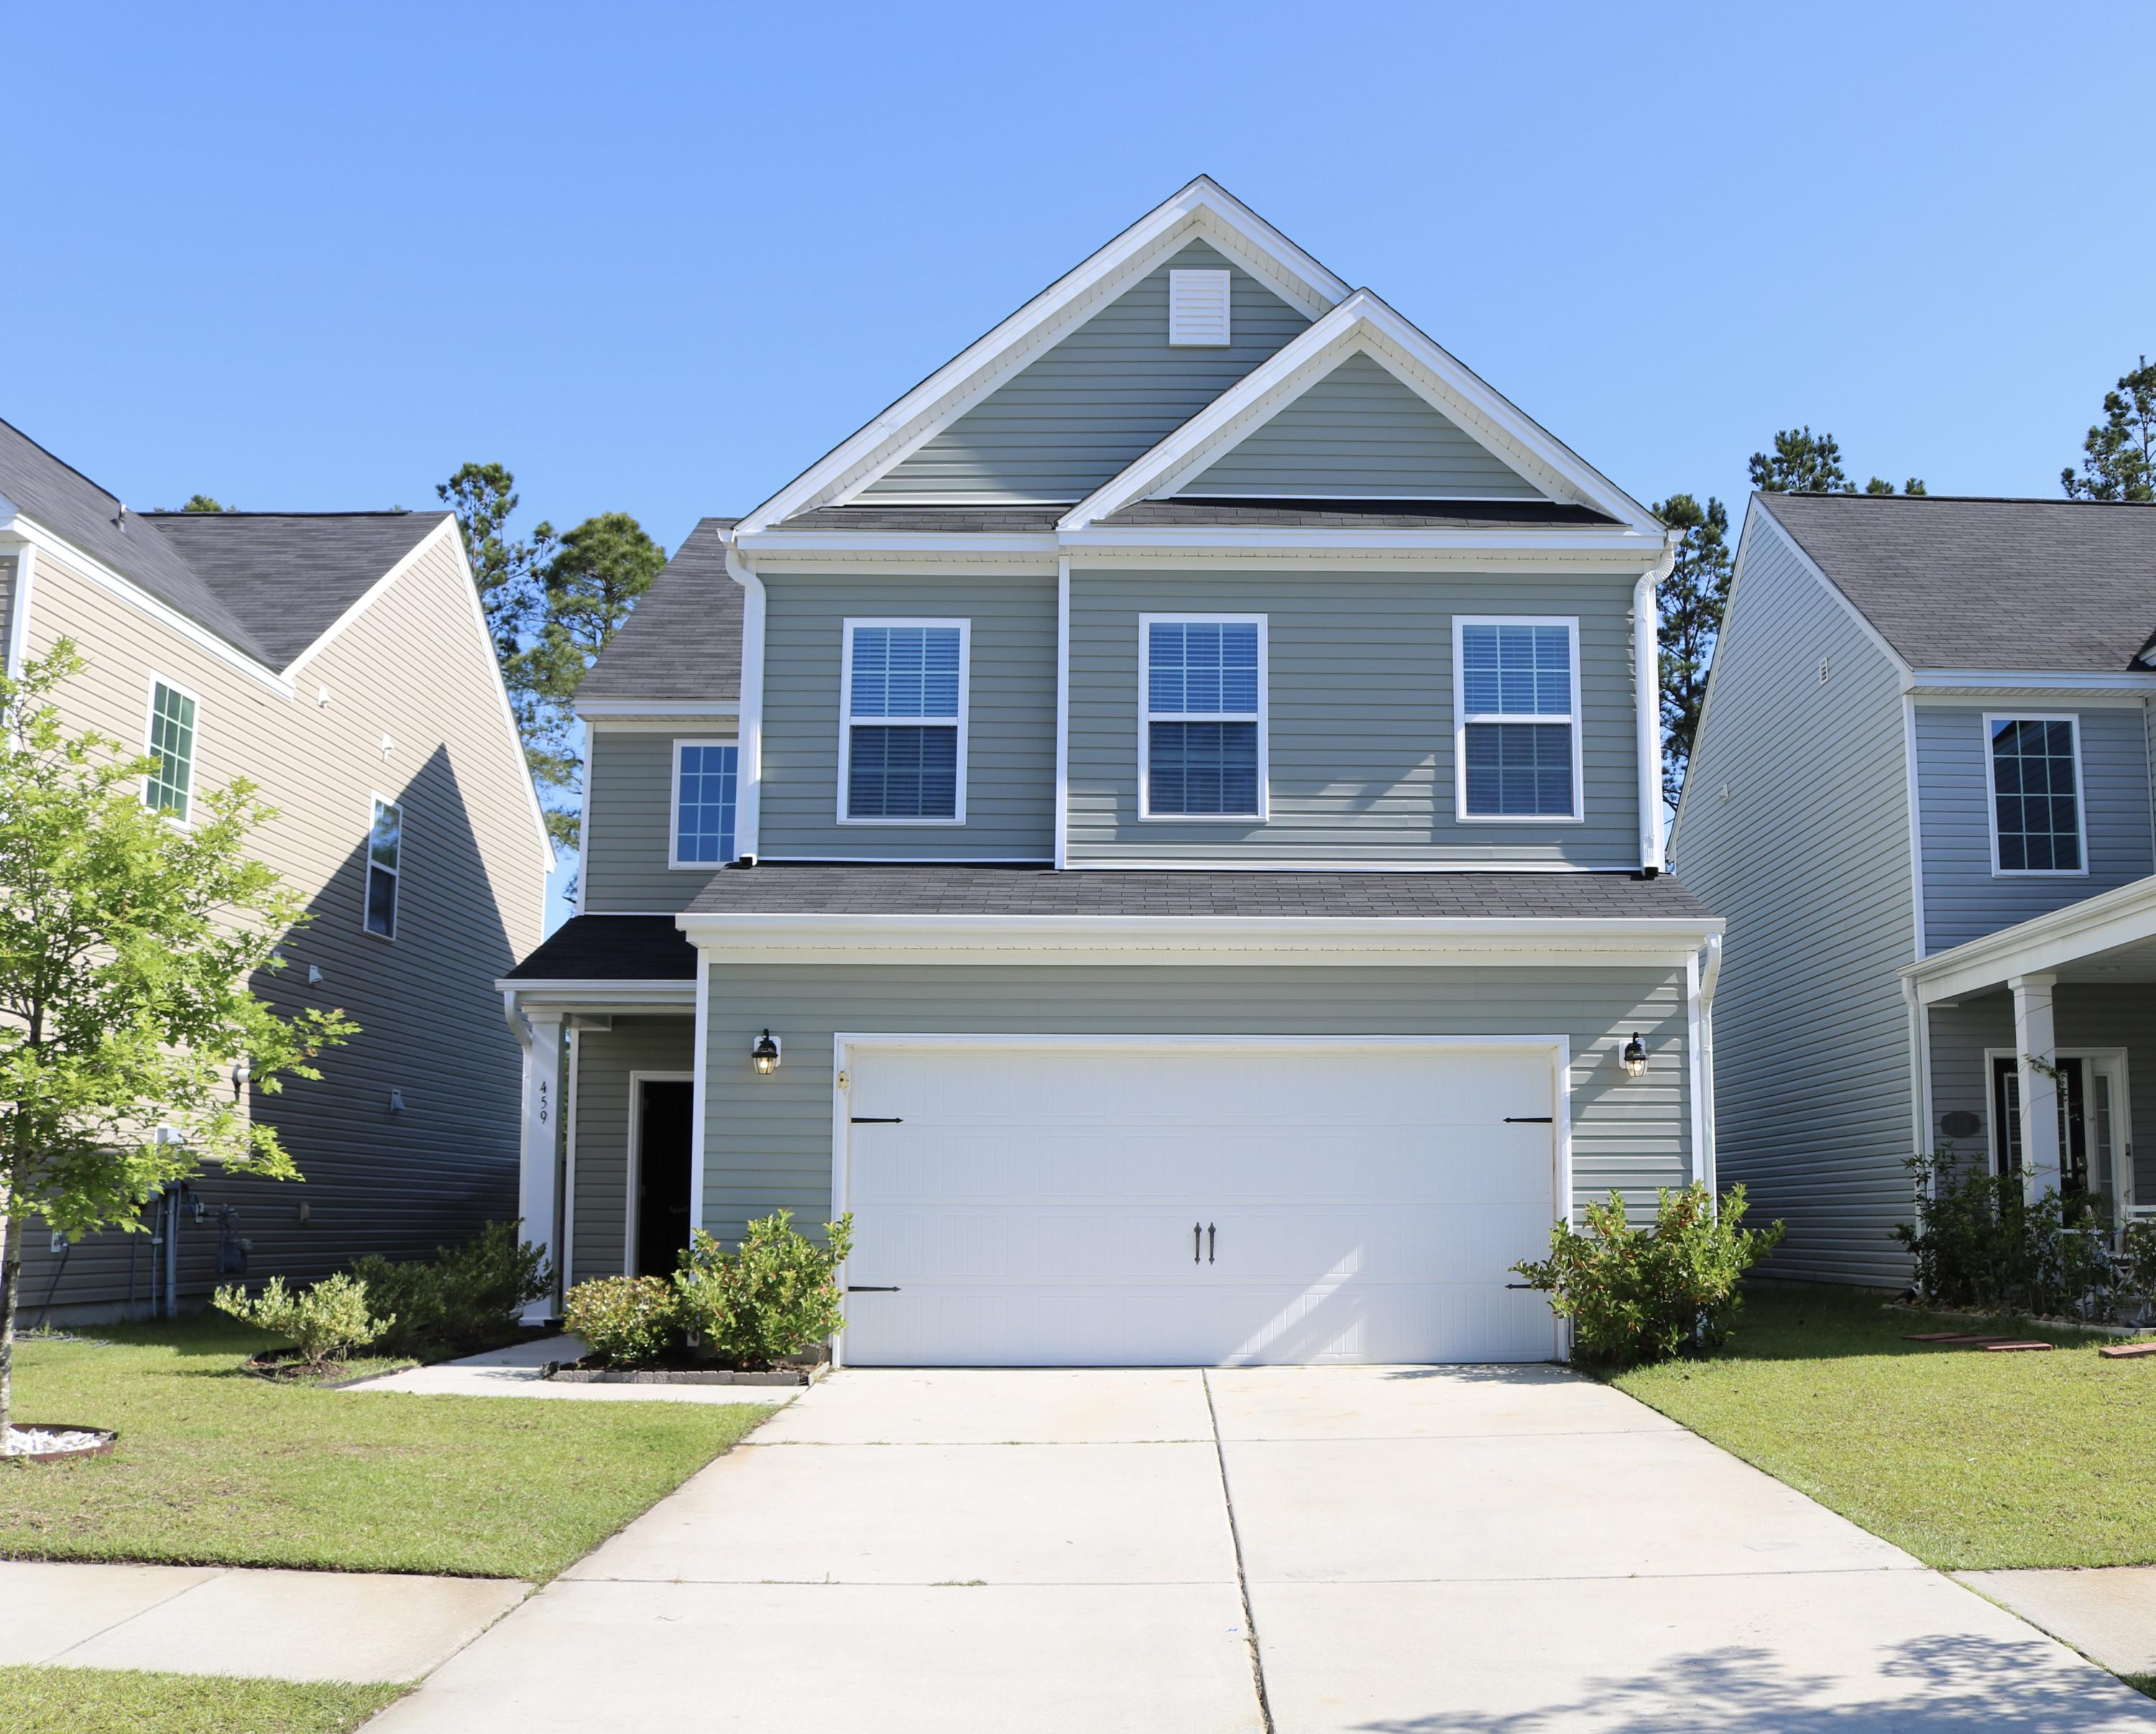 Cane Bay Plantation Homes For Sale - 459 Whispering Breeze, Summerville, SC - 57